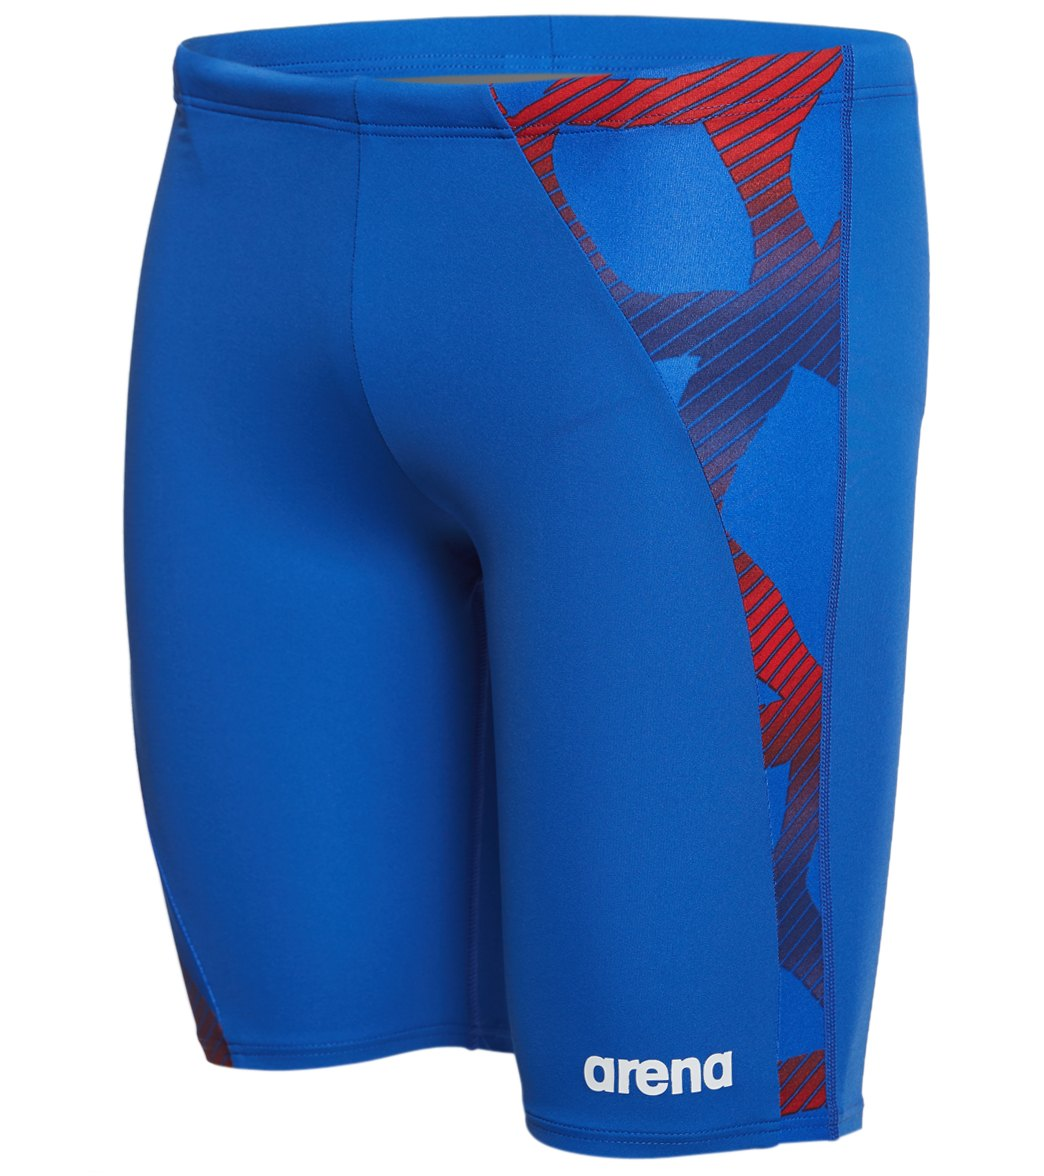 2e7d8b1d2a Arena Men's Spider Panel Jammer Swimsuit at SwimOutlet.com - Free Shipping